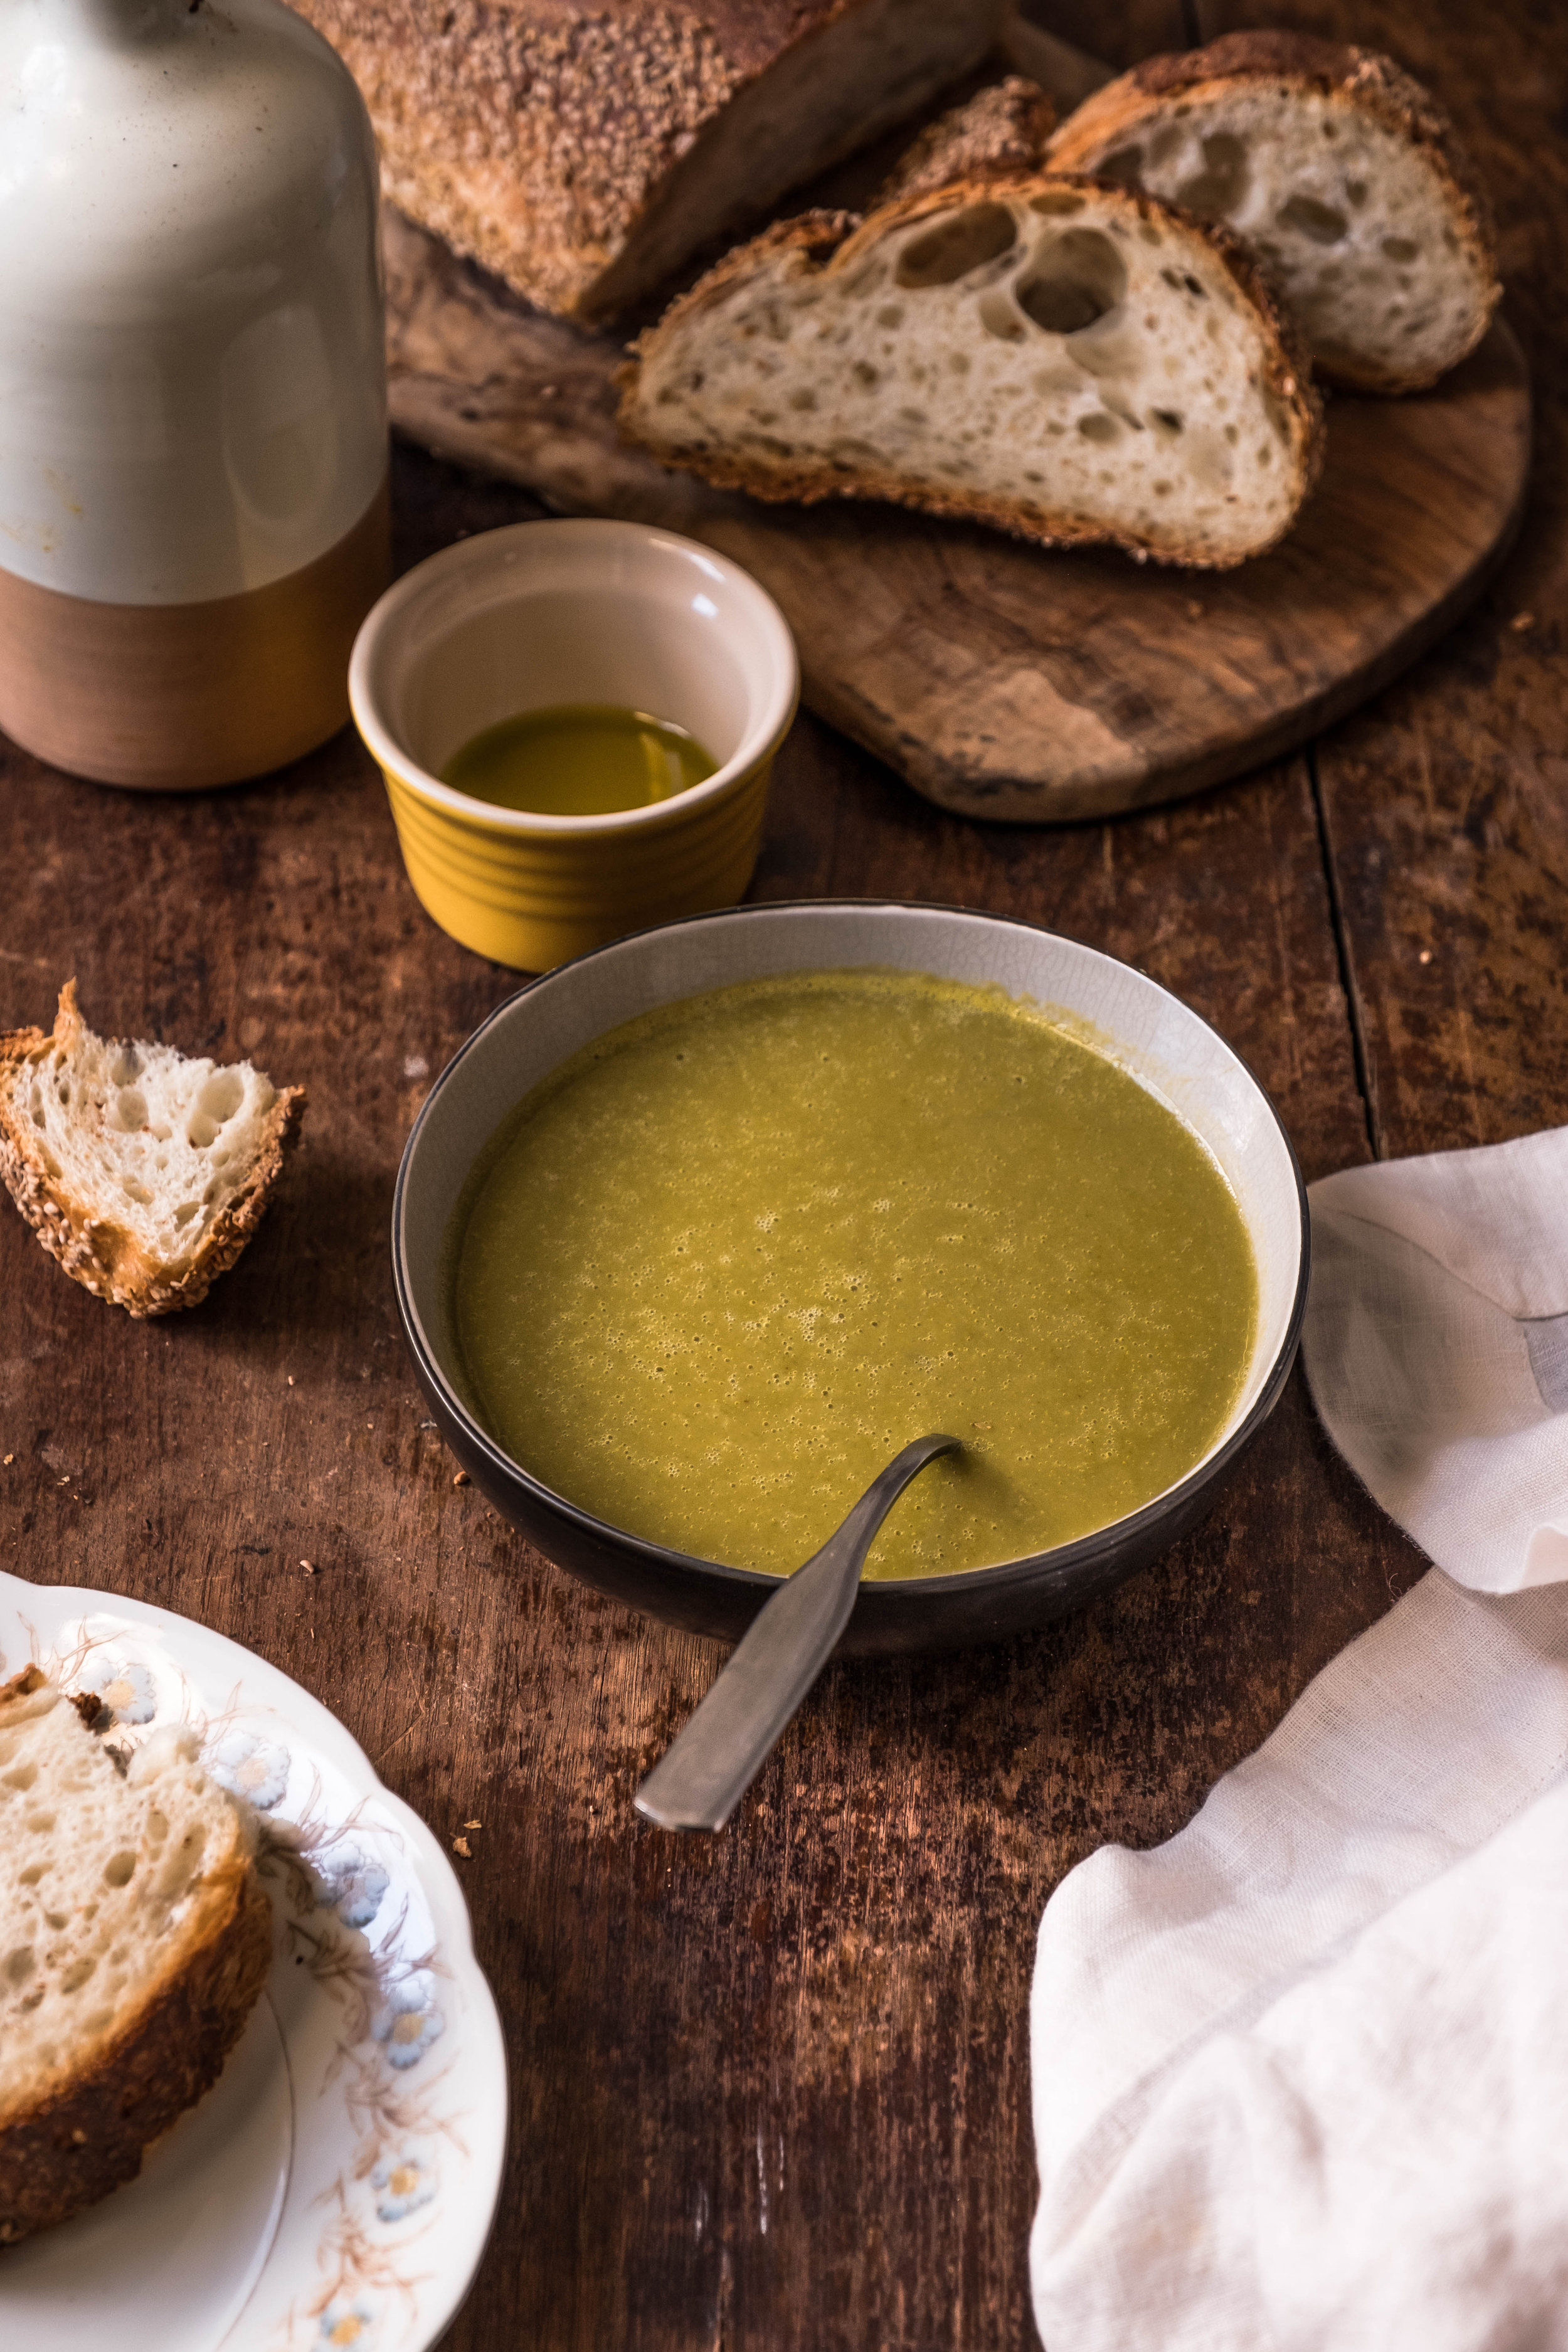 ROSE & IVY Journal Split Pea & Spinach Soup